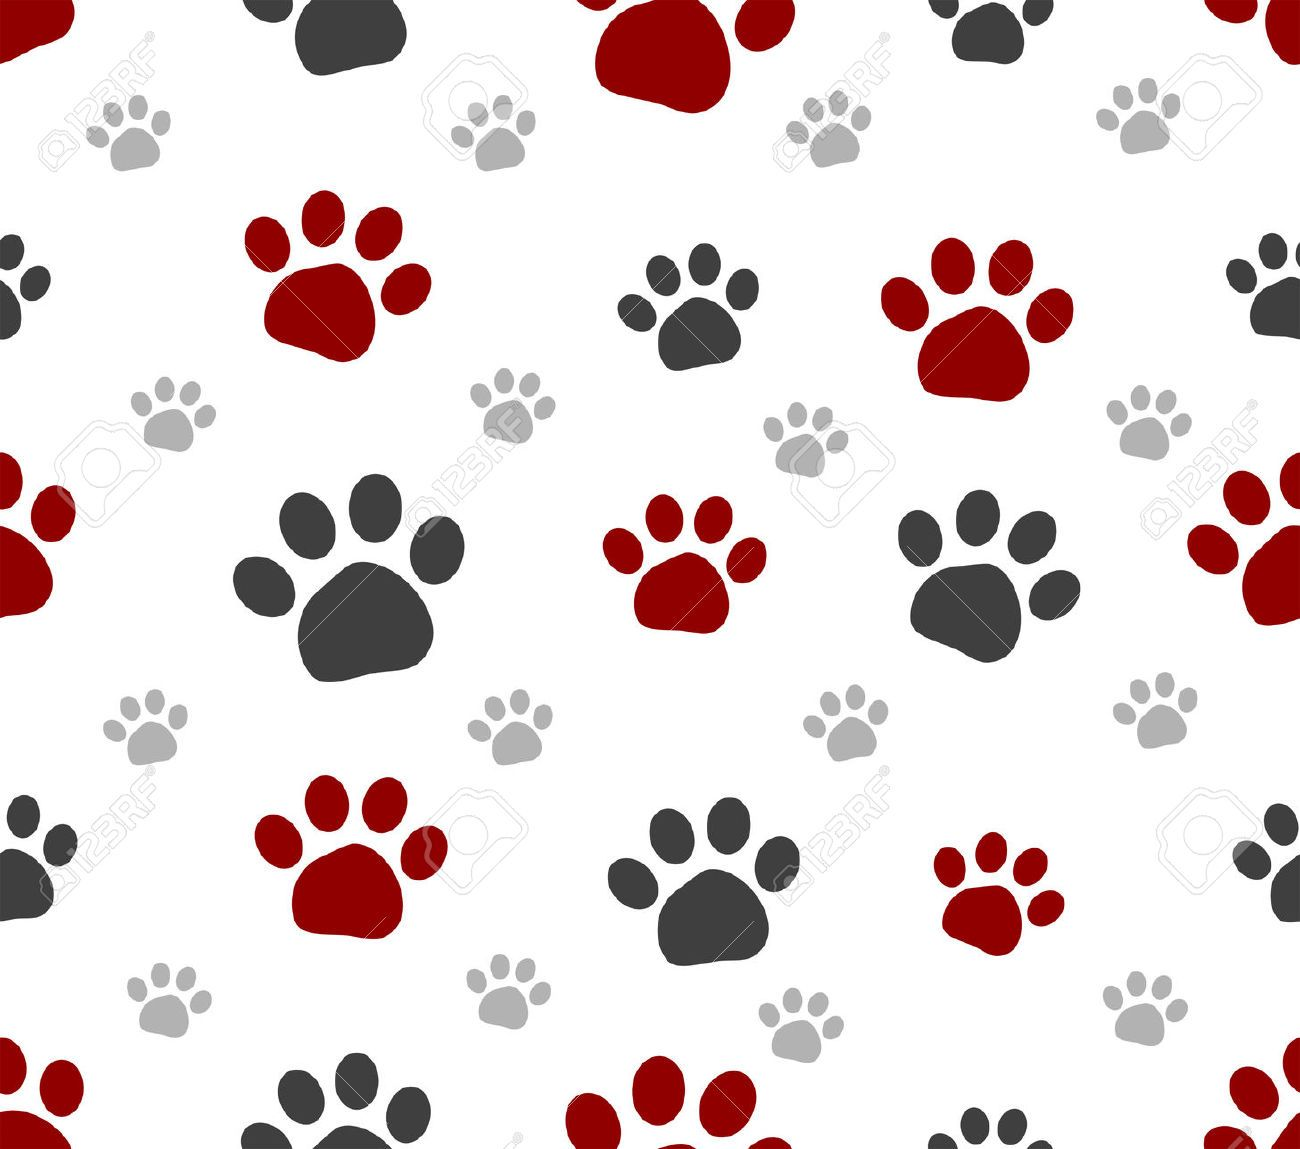 4285204 seamless paws pet design for background banque dimagesg 4285204 seamless paws pet design for background banque voltagebd Gallery